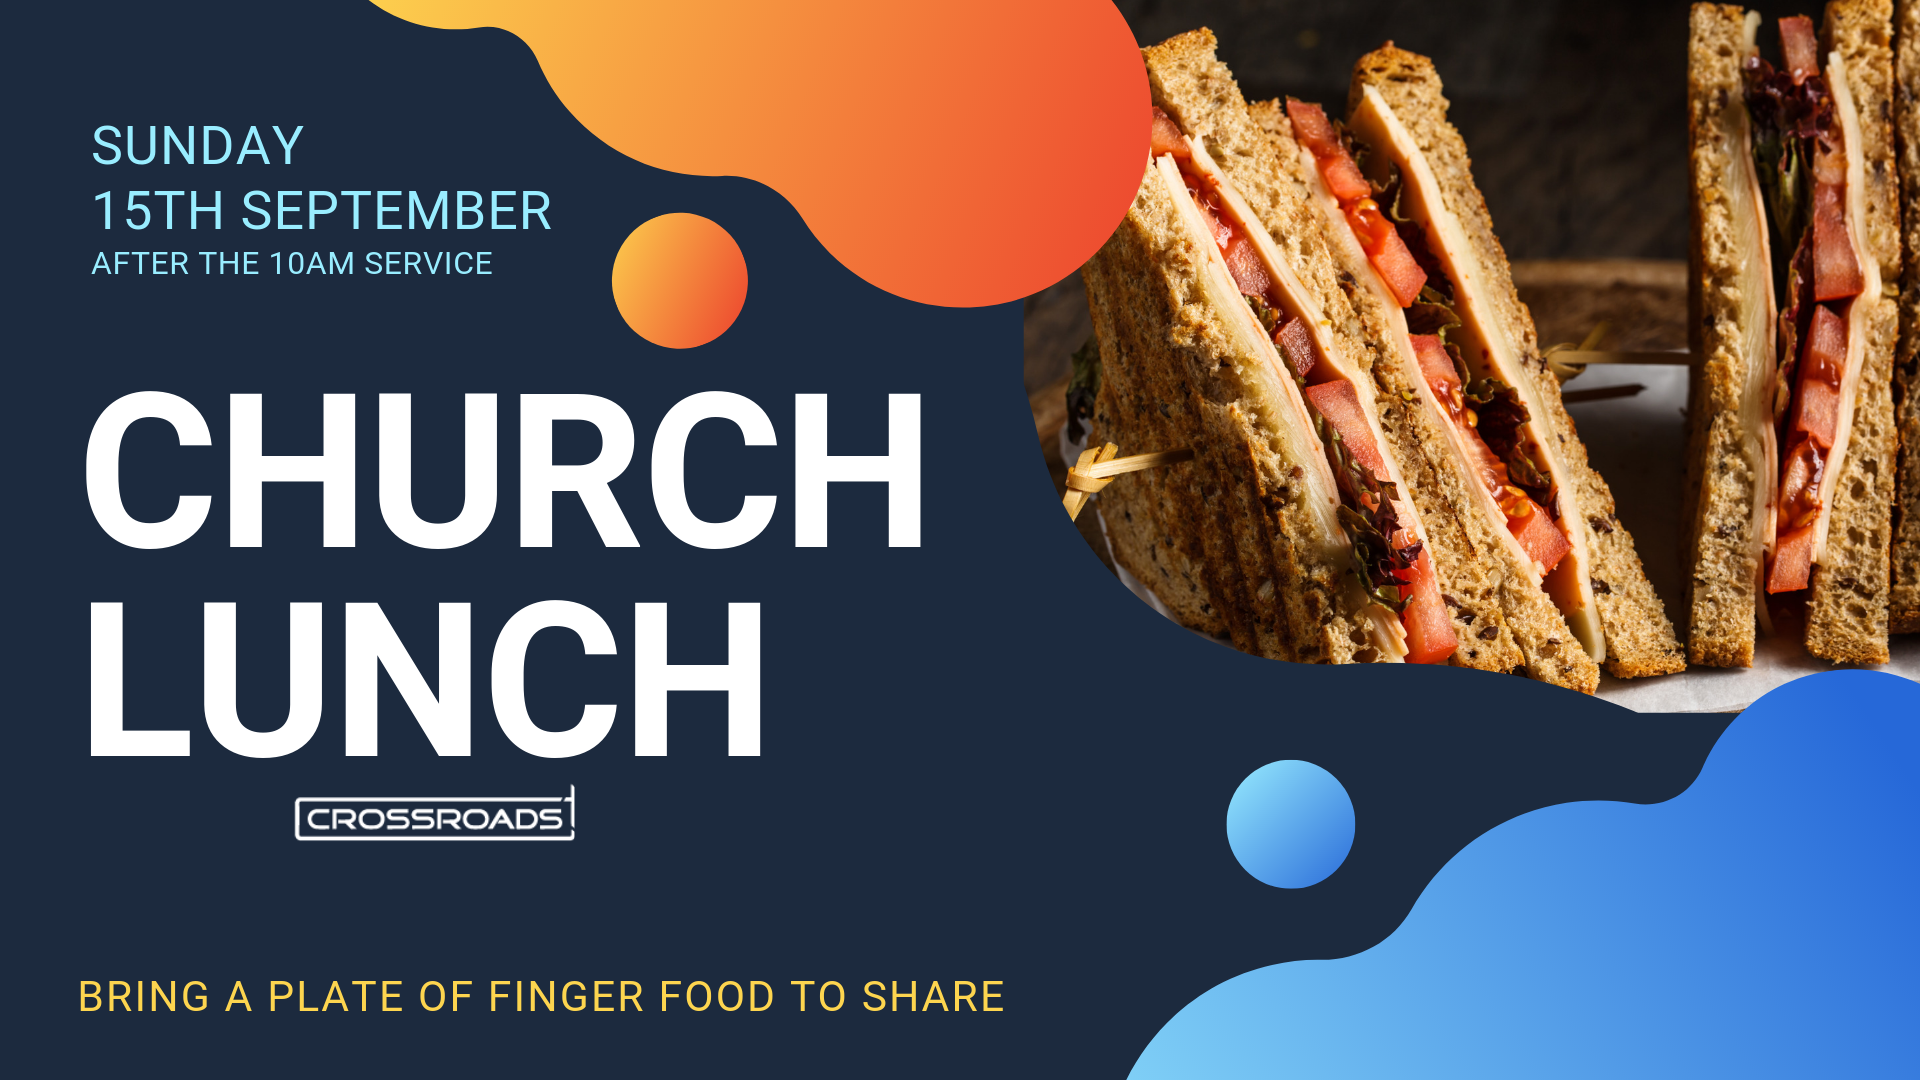 CHURCH LUNCH 16X9 (2).png